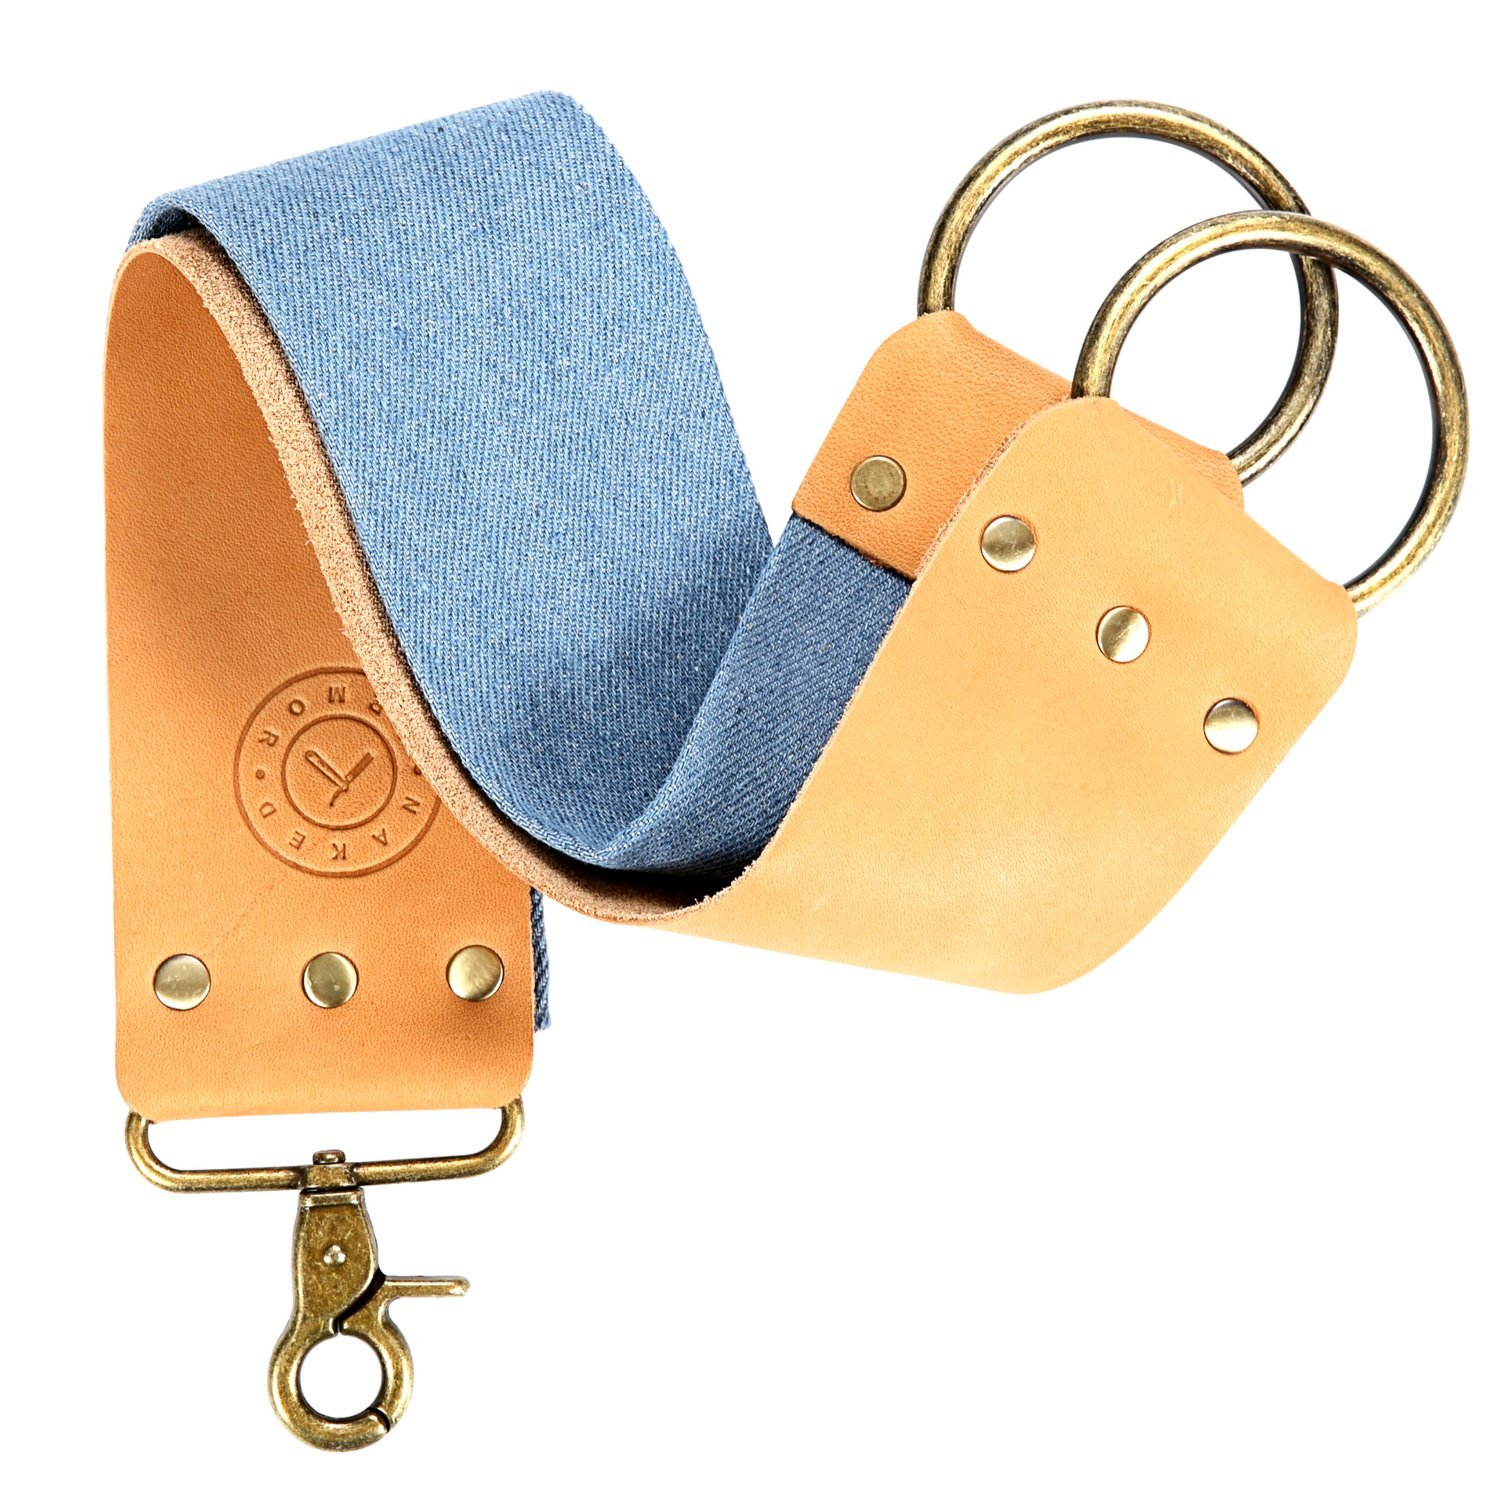 Leather Strop Knife Strop + Razor Strop - Keep your Blades Sharp. Riveted Brass Anchor Hooks. Blue Linen Stropping Belt For Cleaning. Great Knife Sharpening Strop, Shaving Strop, Straight Razor Strop Naked Armor